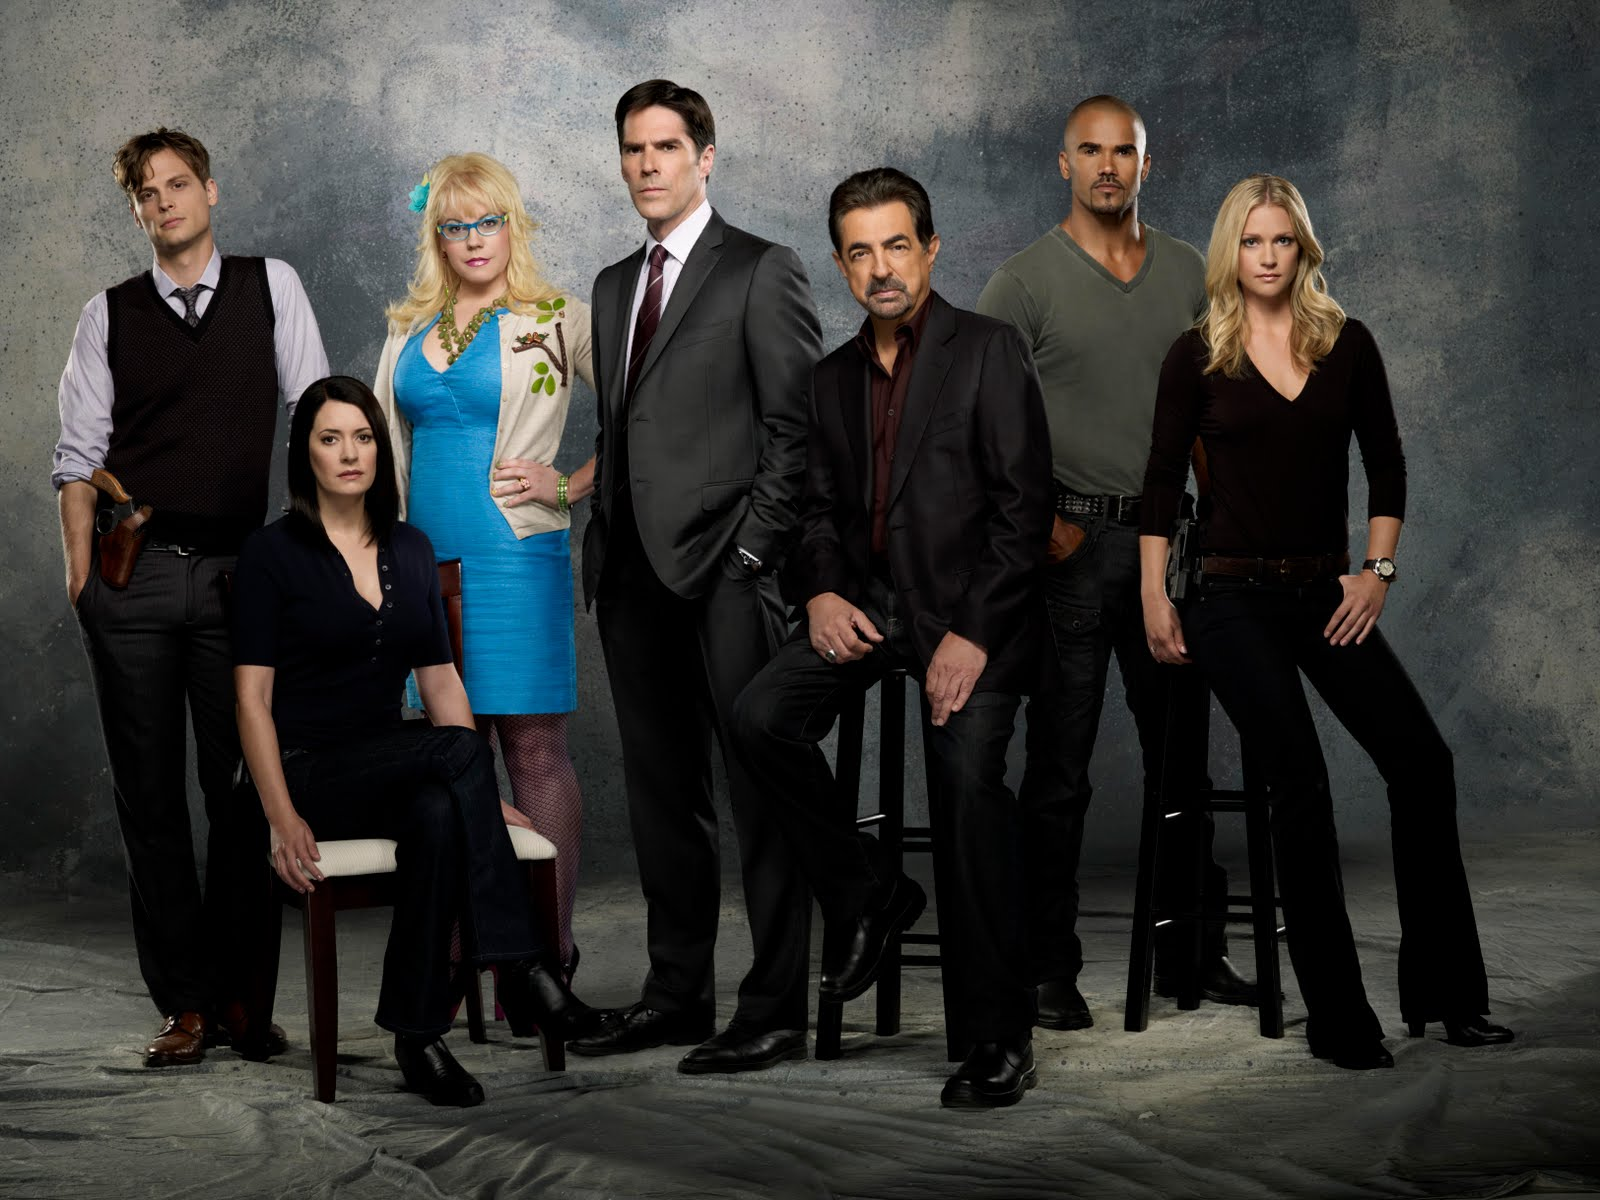 Criminal Minds' Gets A Go For Season 13 On CBS | LATF USA